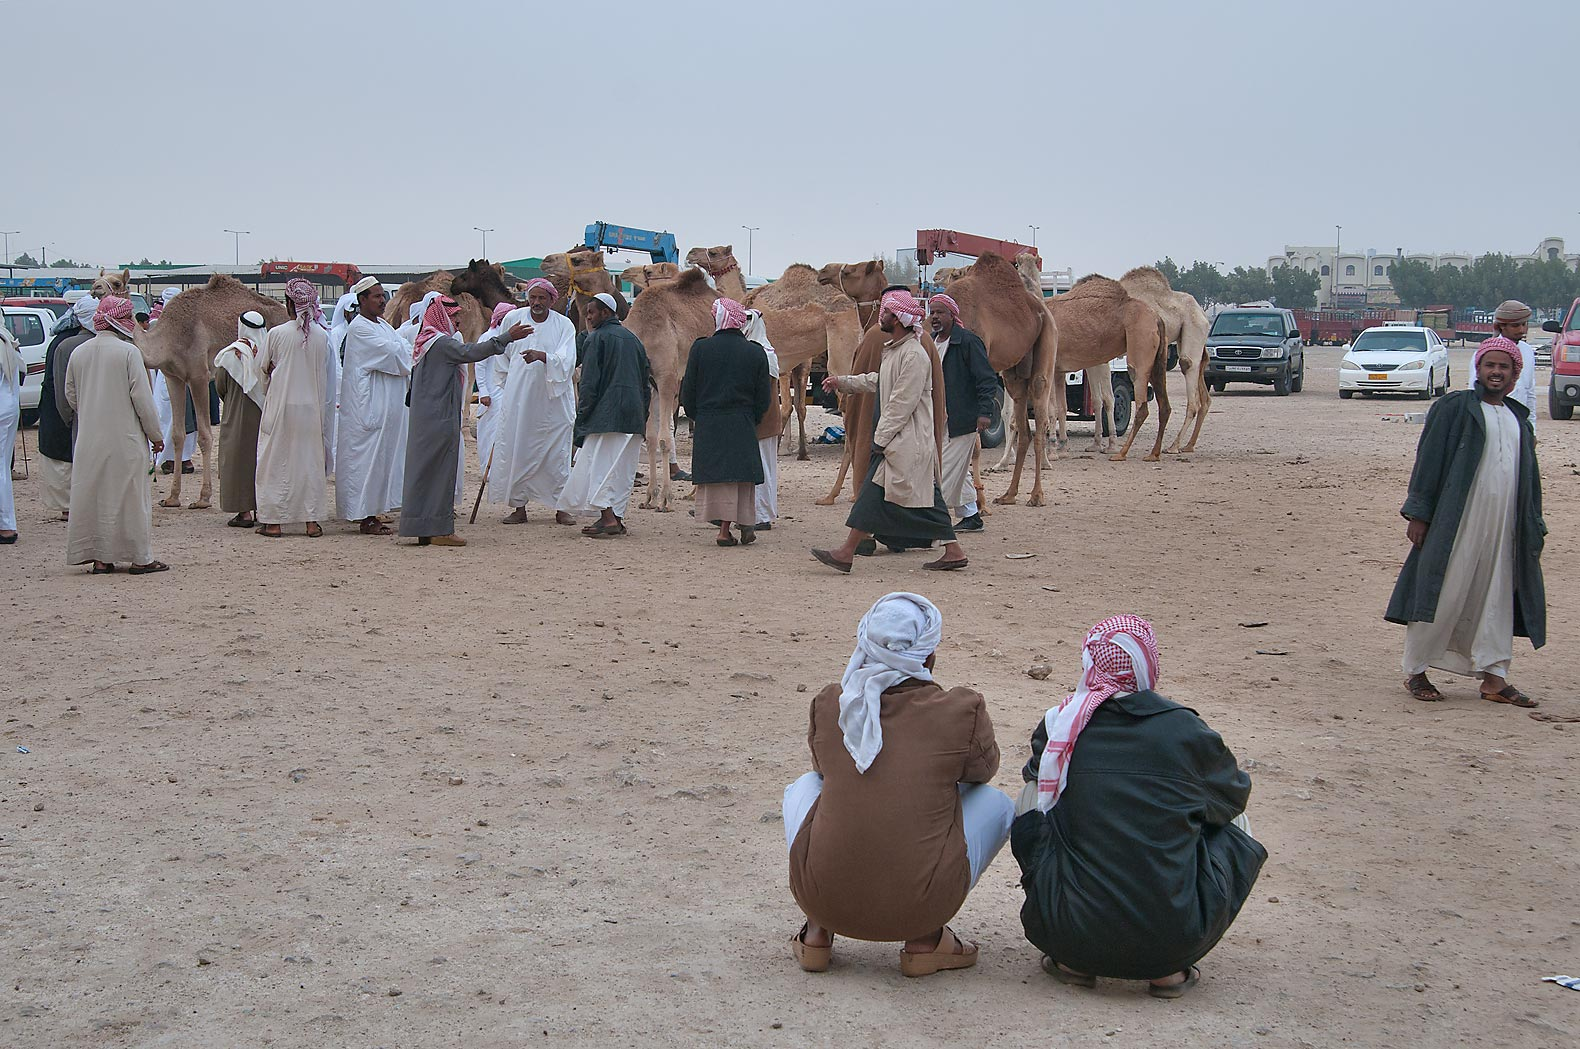 Gathering in Camel Market (Souq), racing section. Doha, Qatar